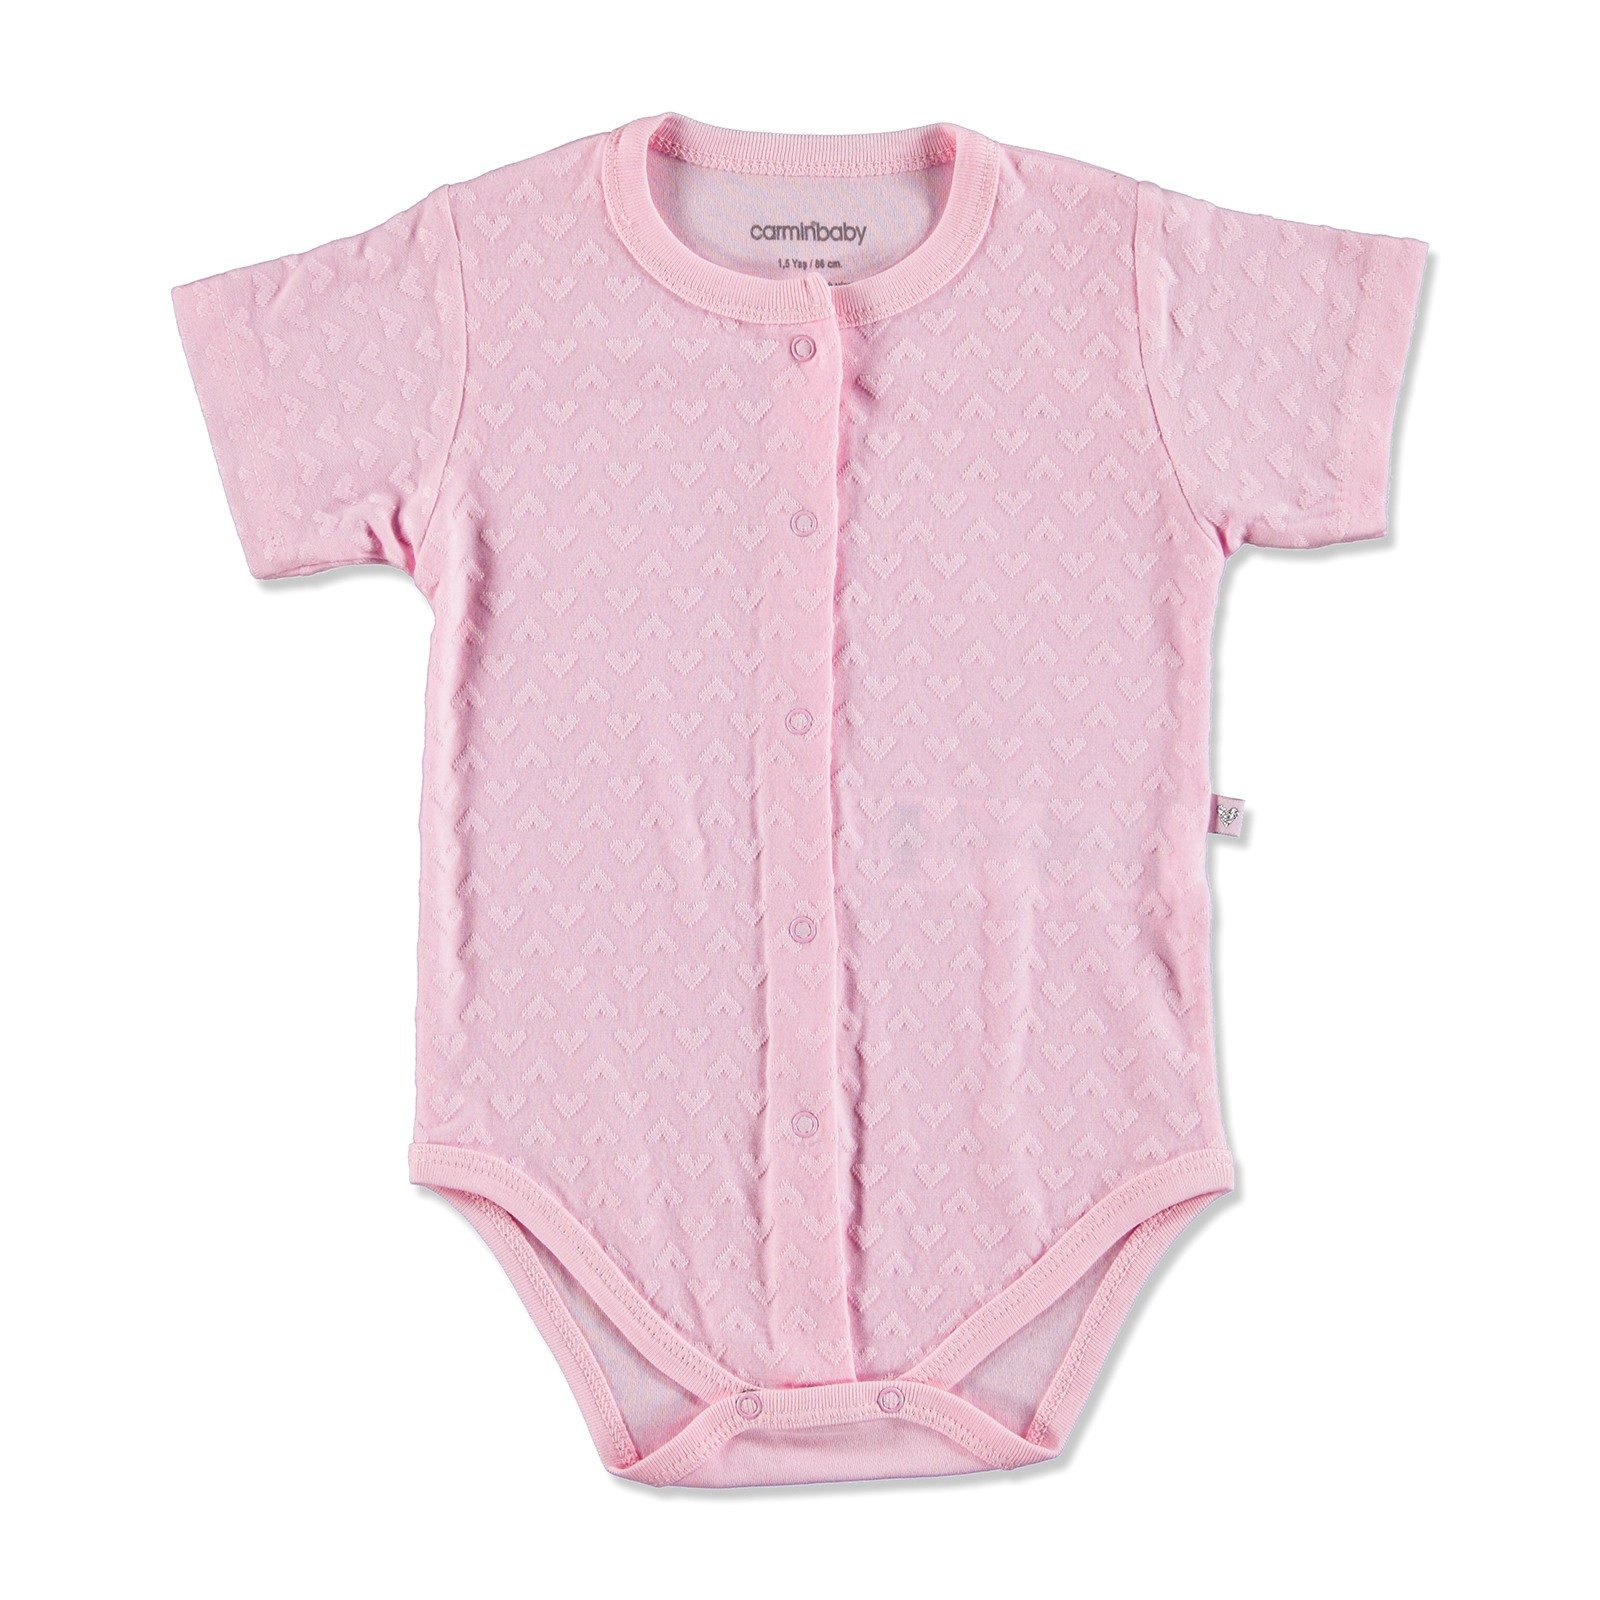 Ebebek Carmin Baby Summer Girl Heart Patterned Jacquard Bodysuit